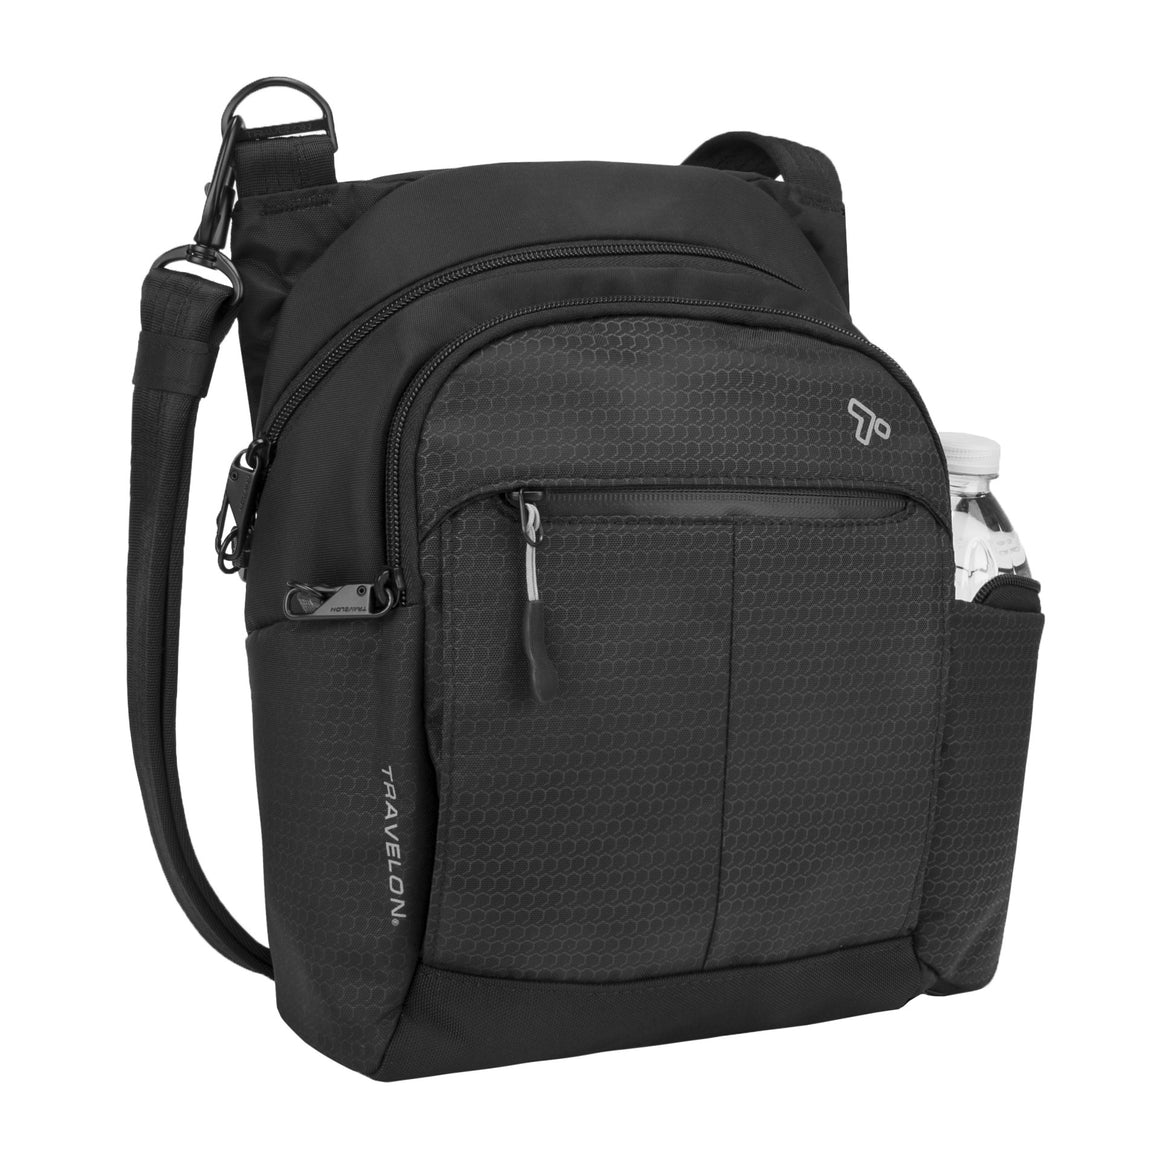 Travelon Anti-Theft RFID Protected Excursion Tour Bag